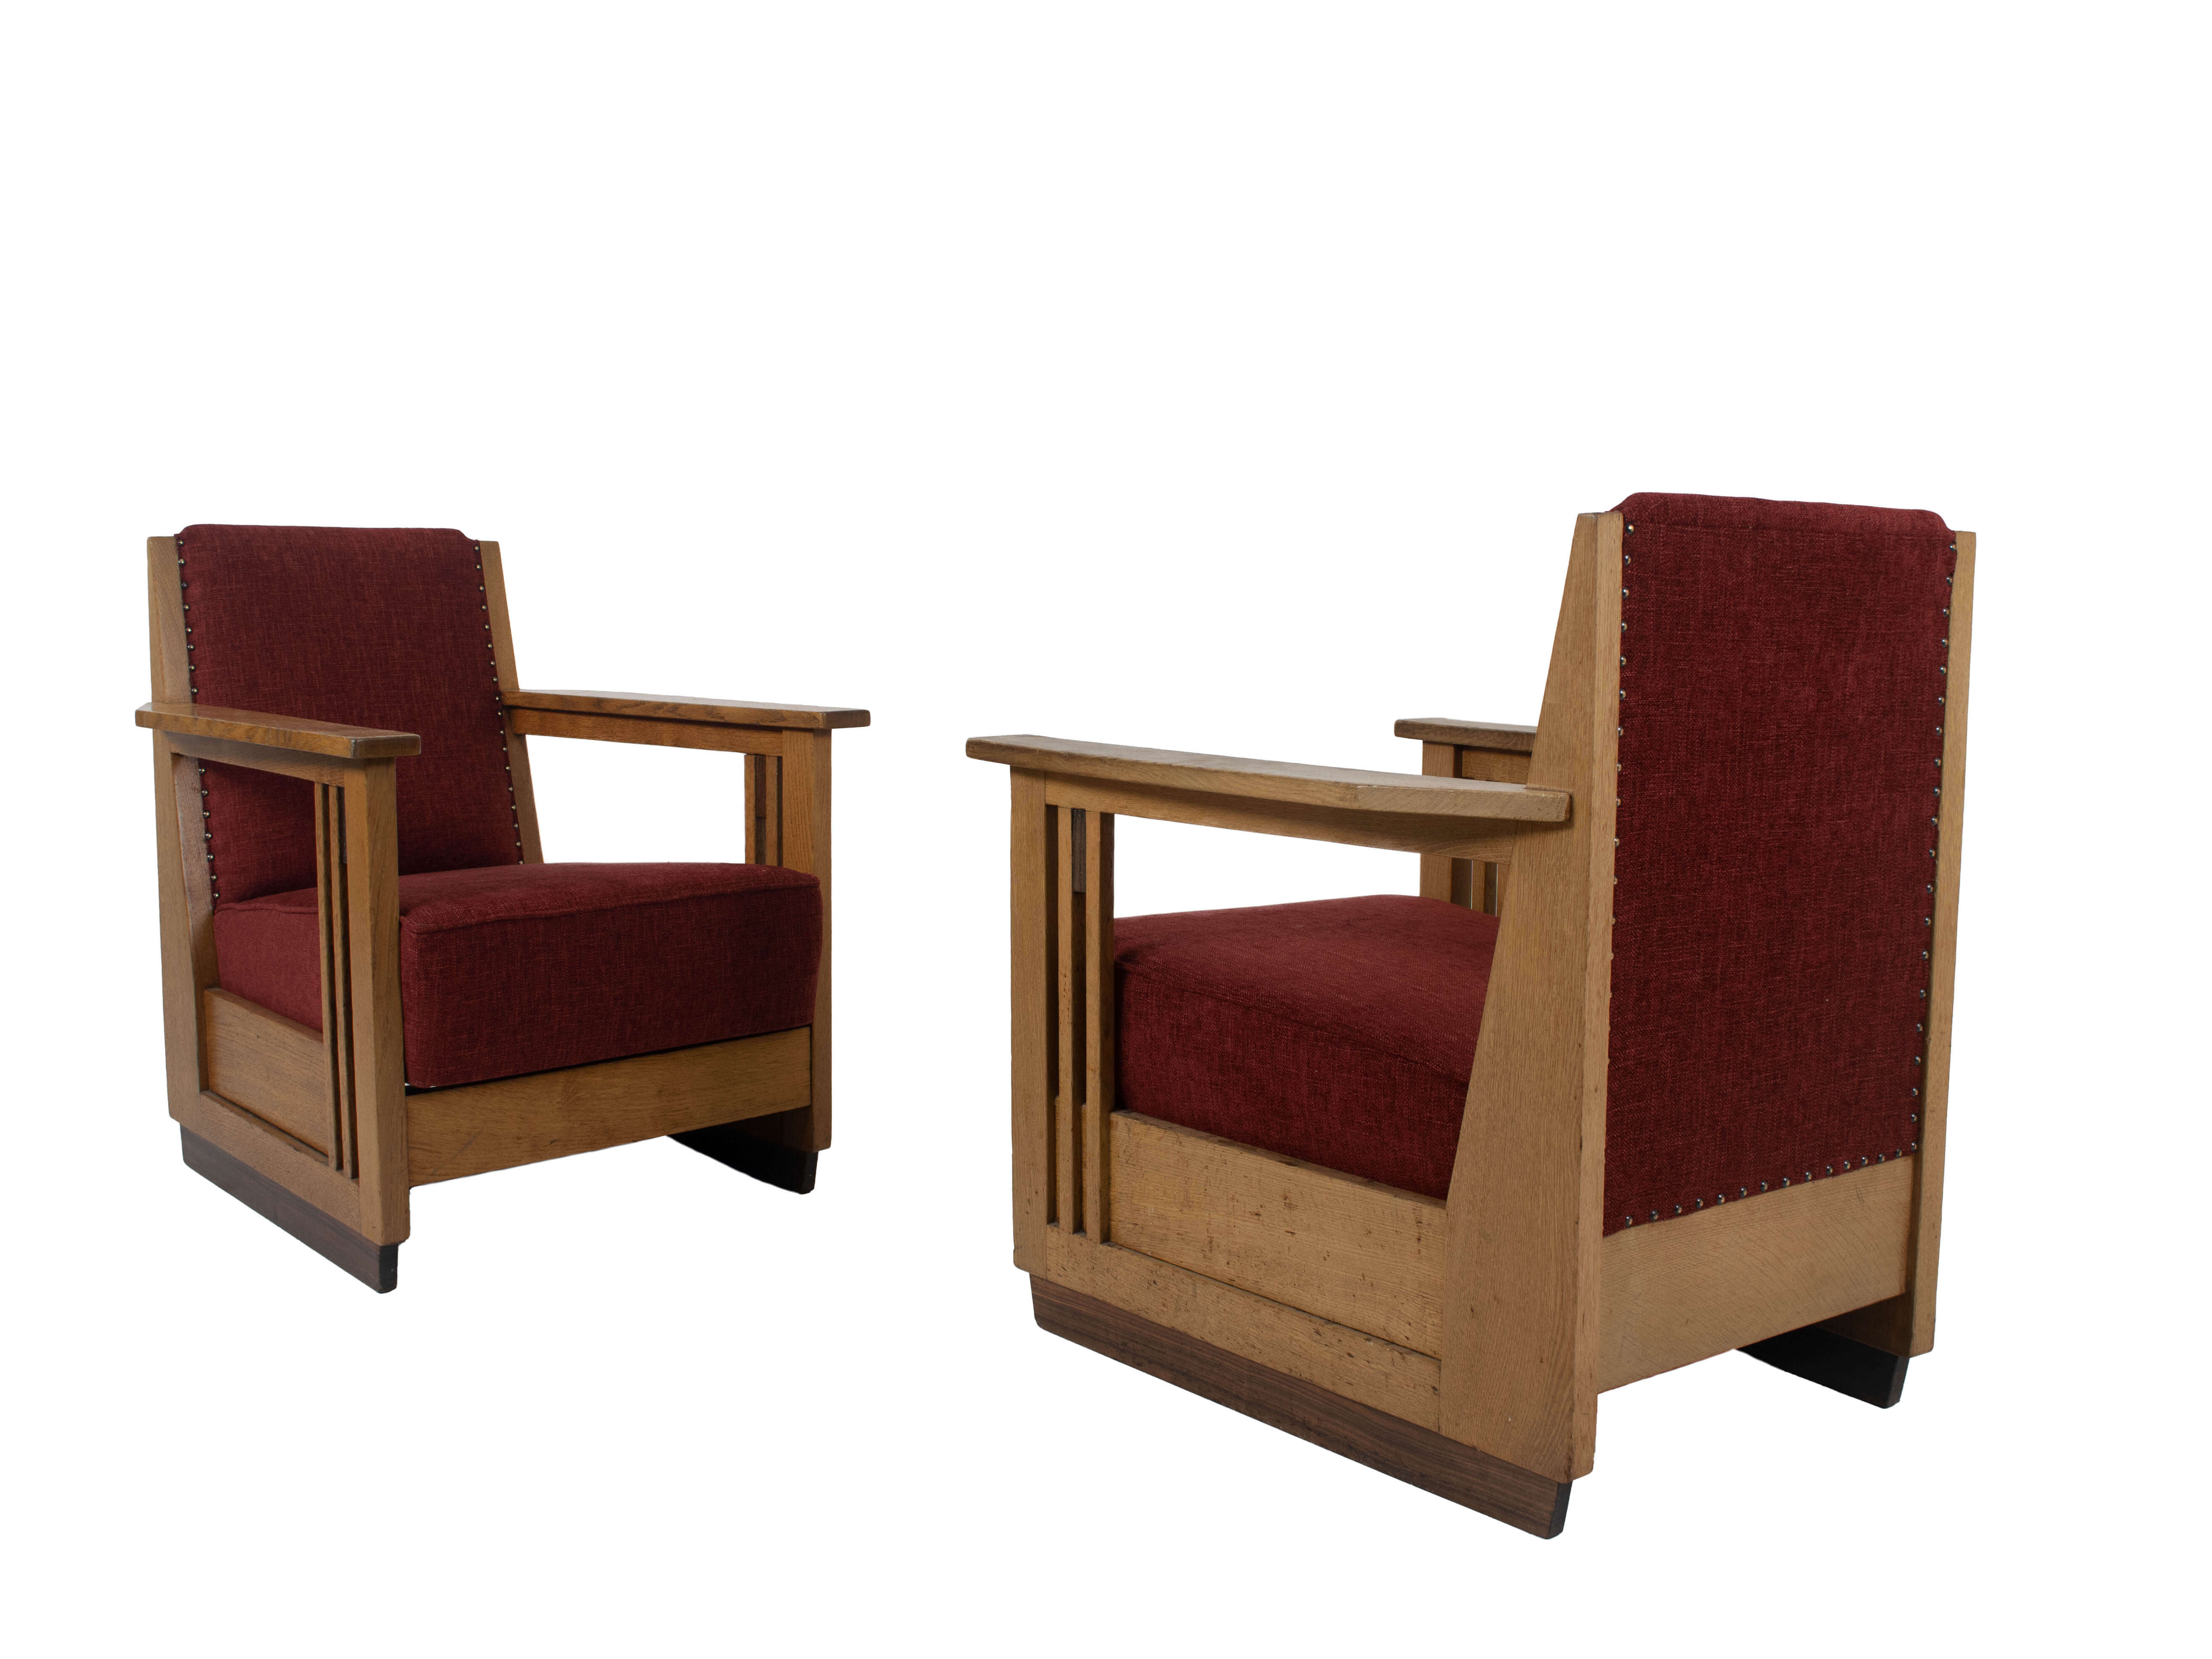 Set of Two Amsterdam School Arm Chairs, The Netherlands 1930s